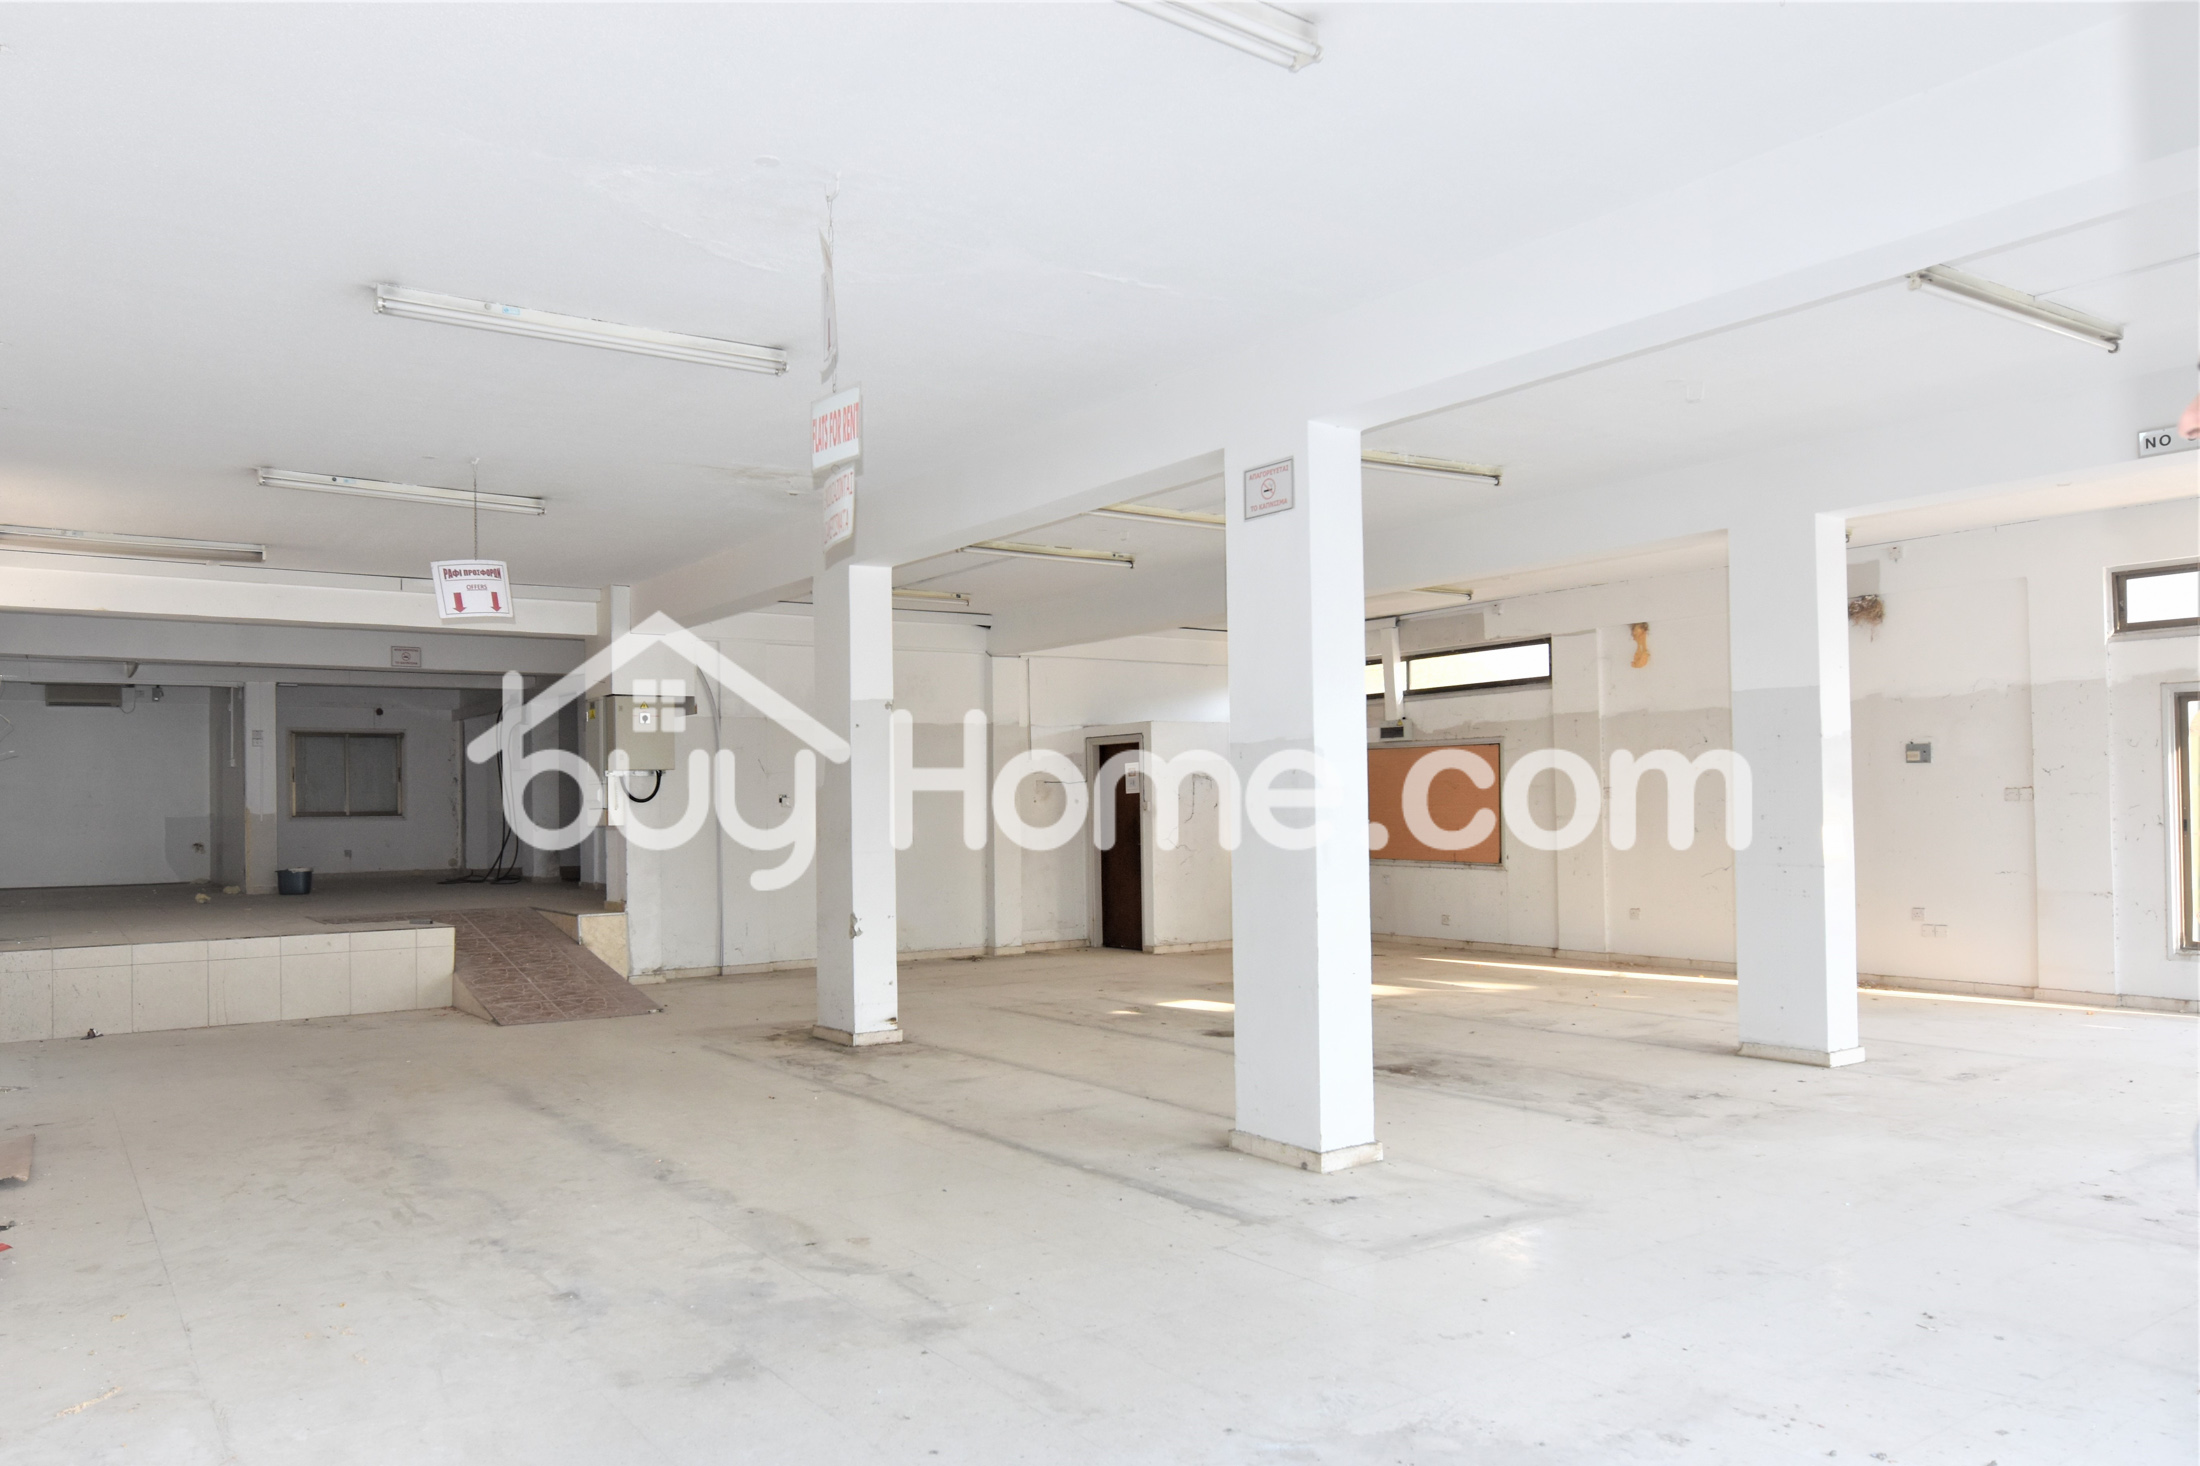 Double Building For Sale | BuyHome